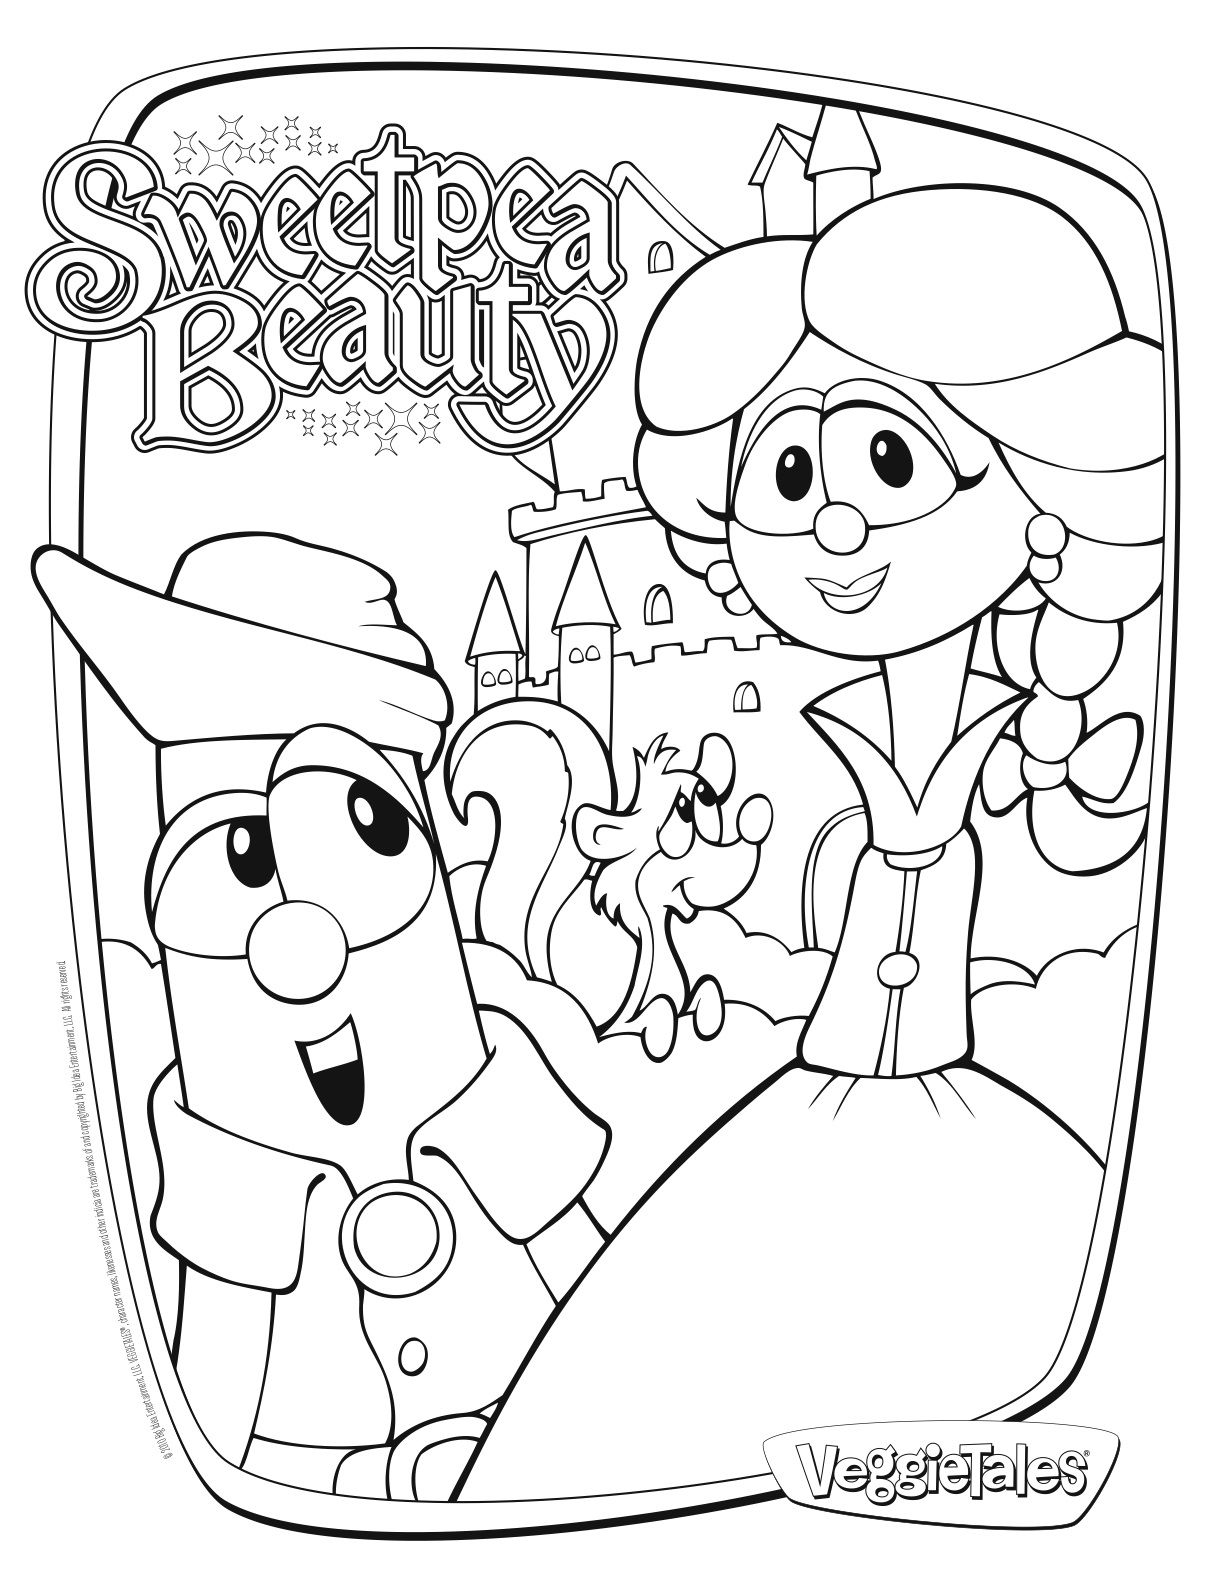 Tons Of Veggie Tales Coloring Pages Sweetpea Beauty Pirate